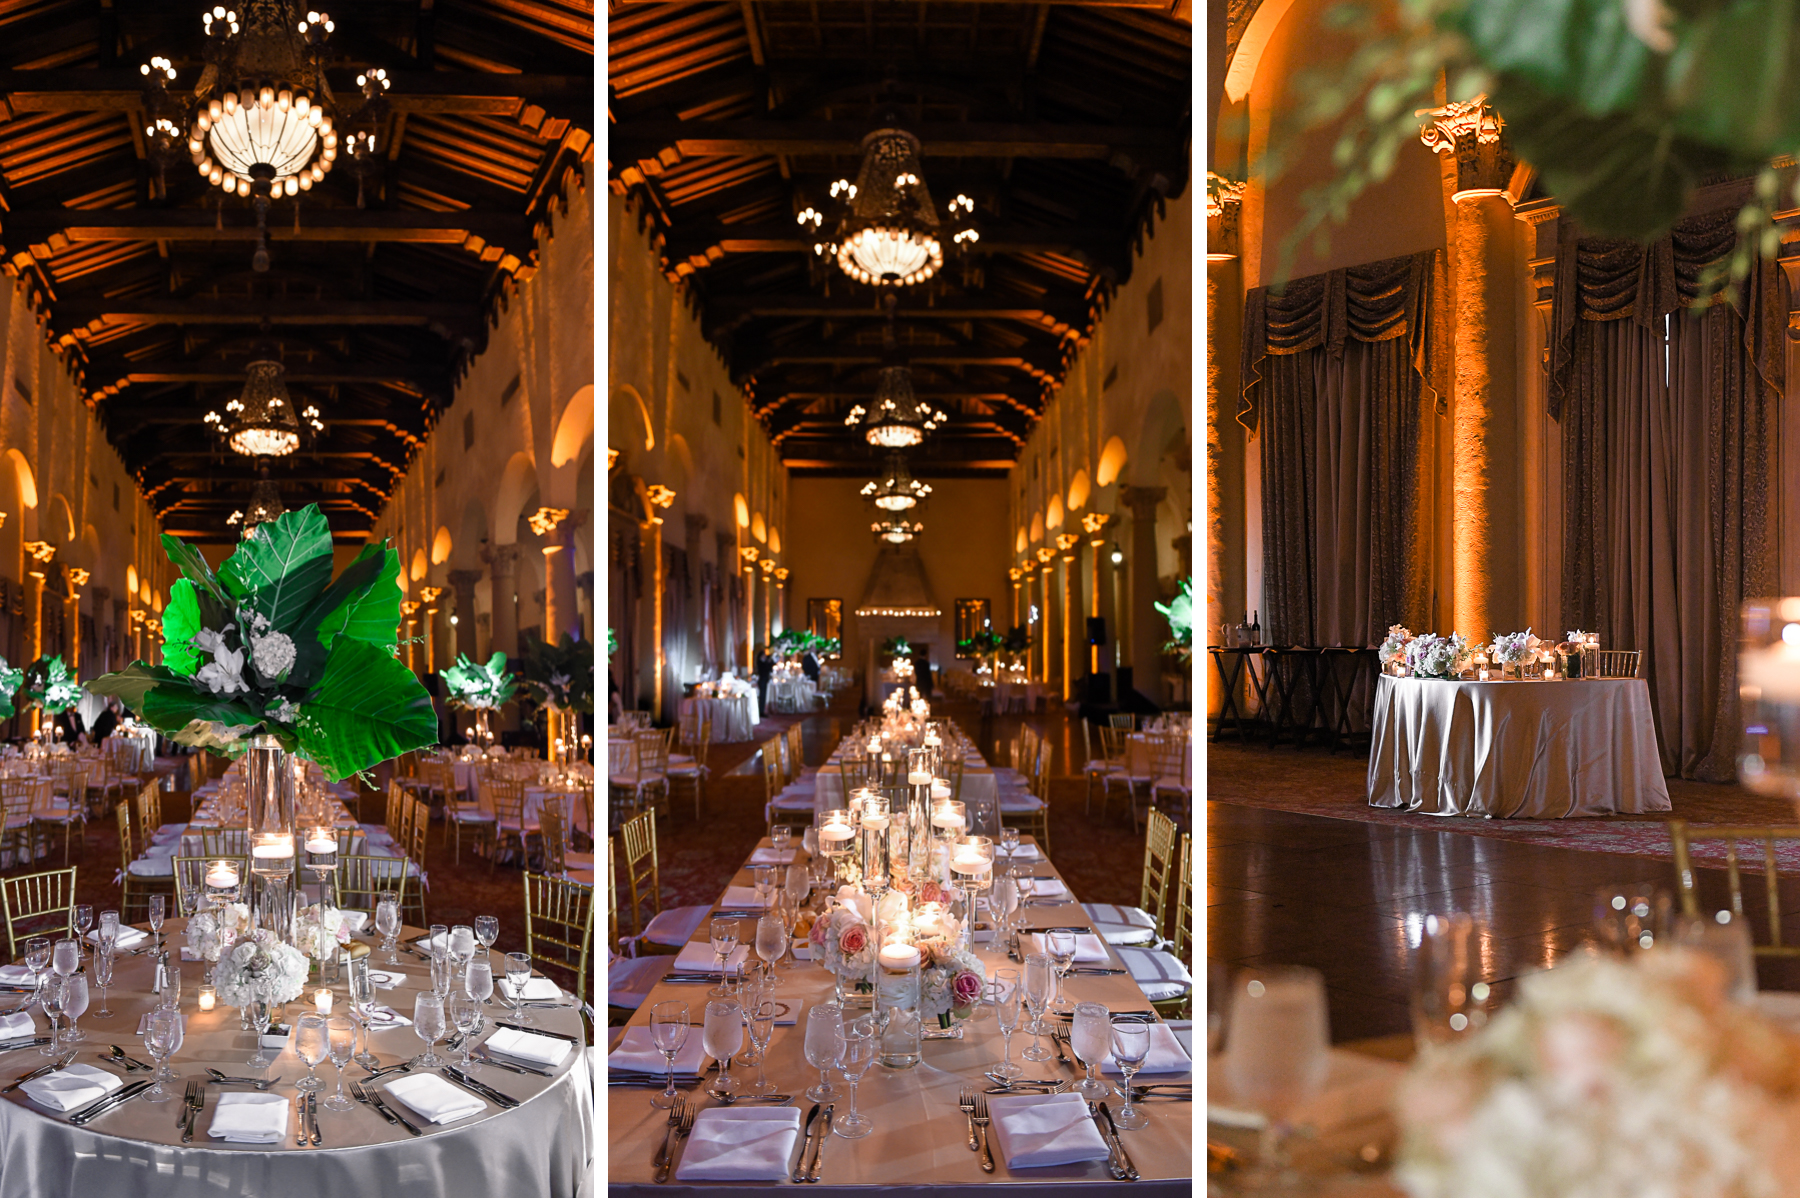 decor at Modern Luxury Jewish Wedding Photography at Biltmore Miami Coral Gables